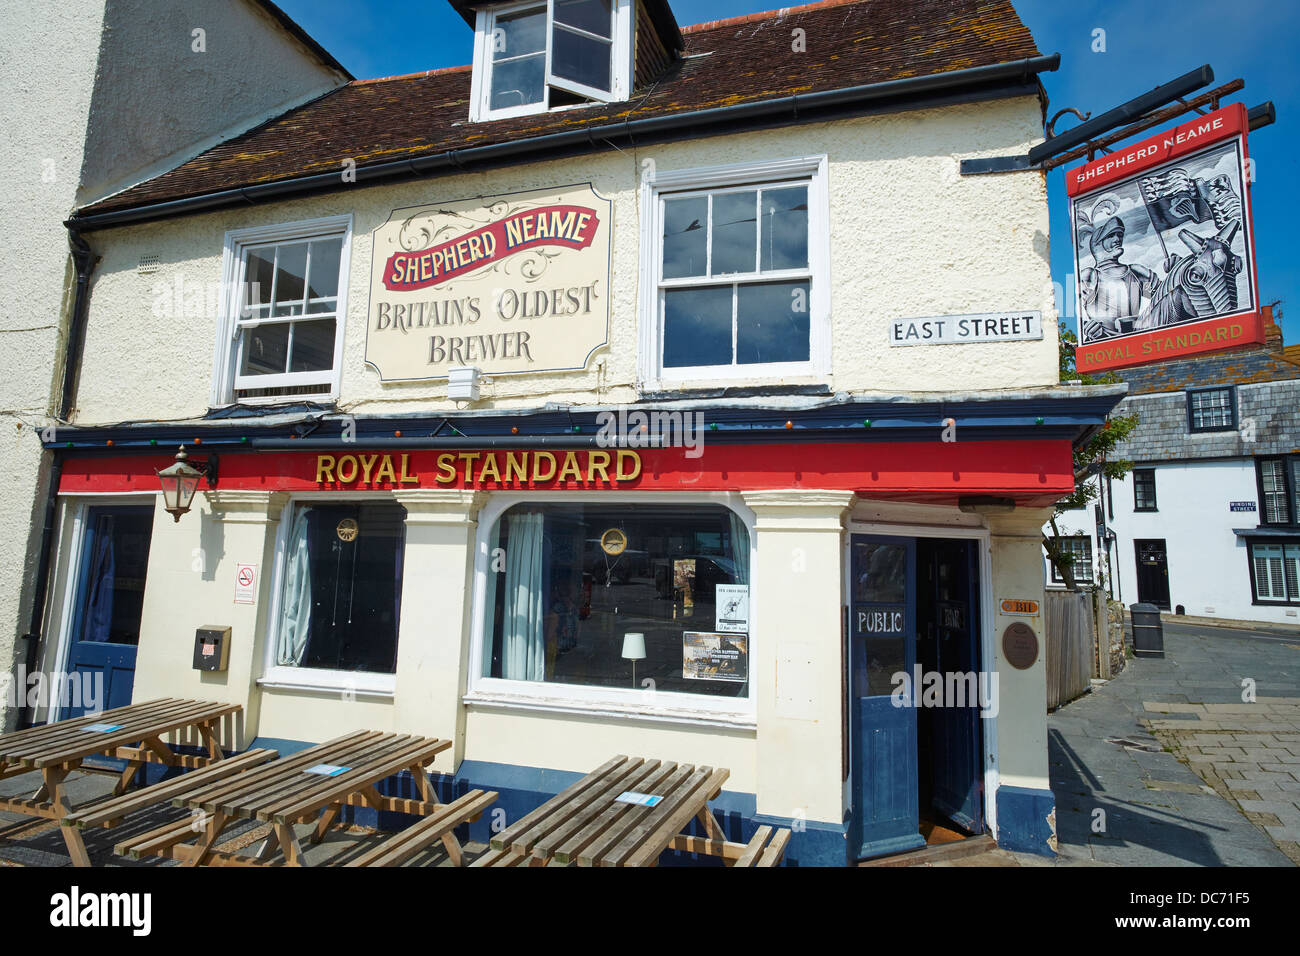 The Royal Standard a Shepherd Neame Public House East Street Hastings Sussex UK - Stock Image